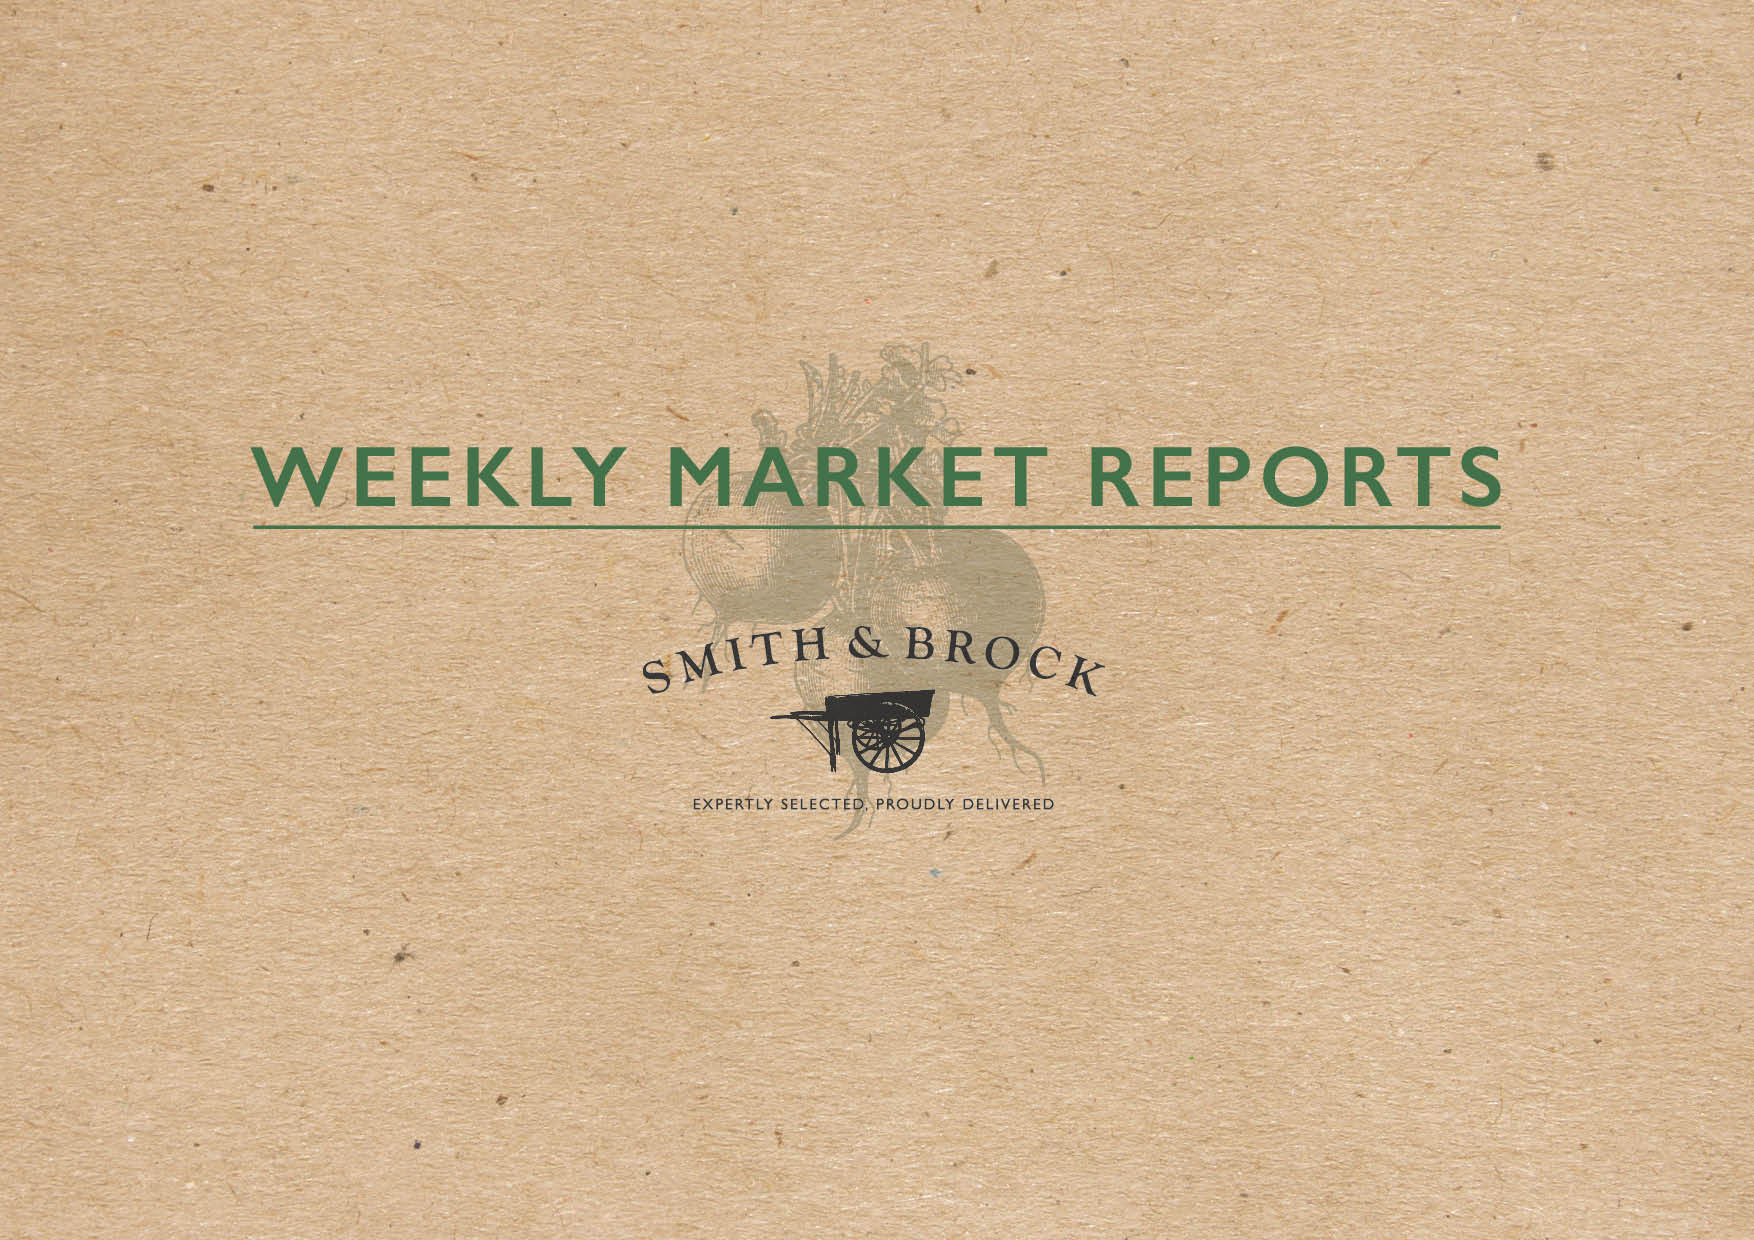 smith and brock market report